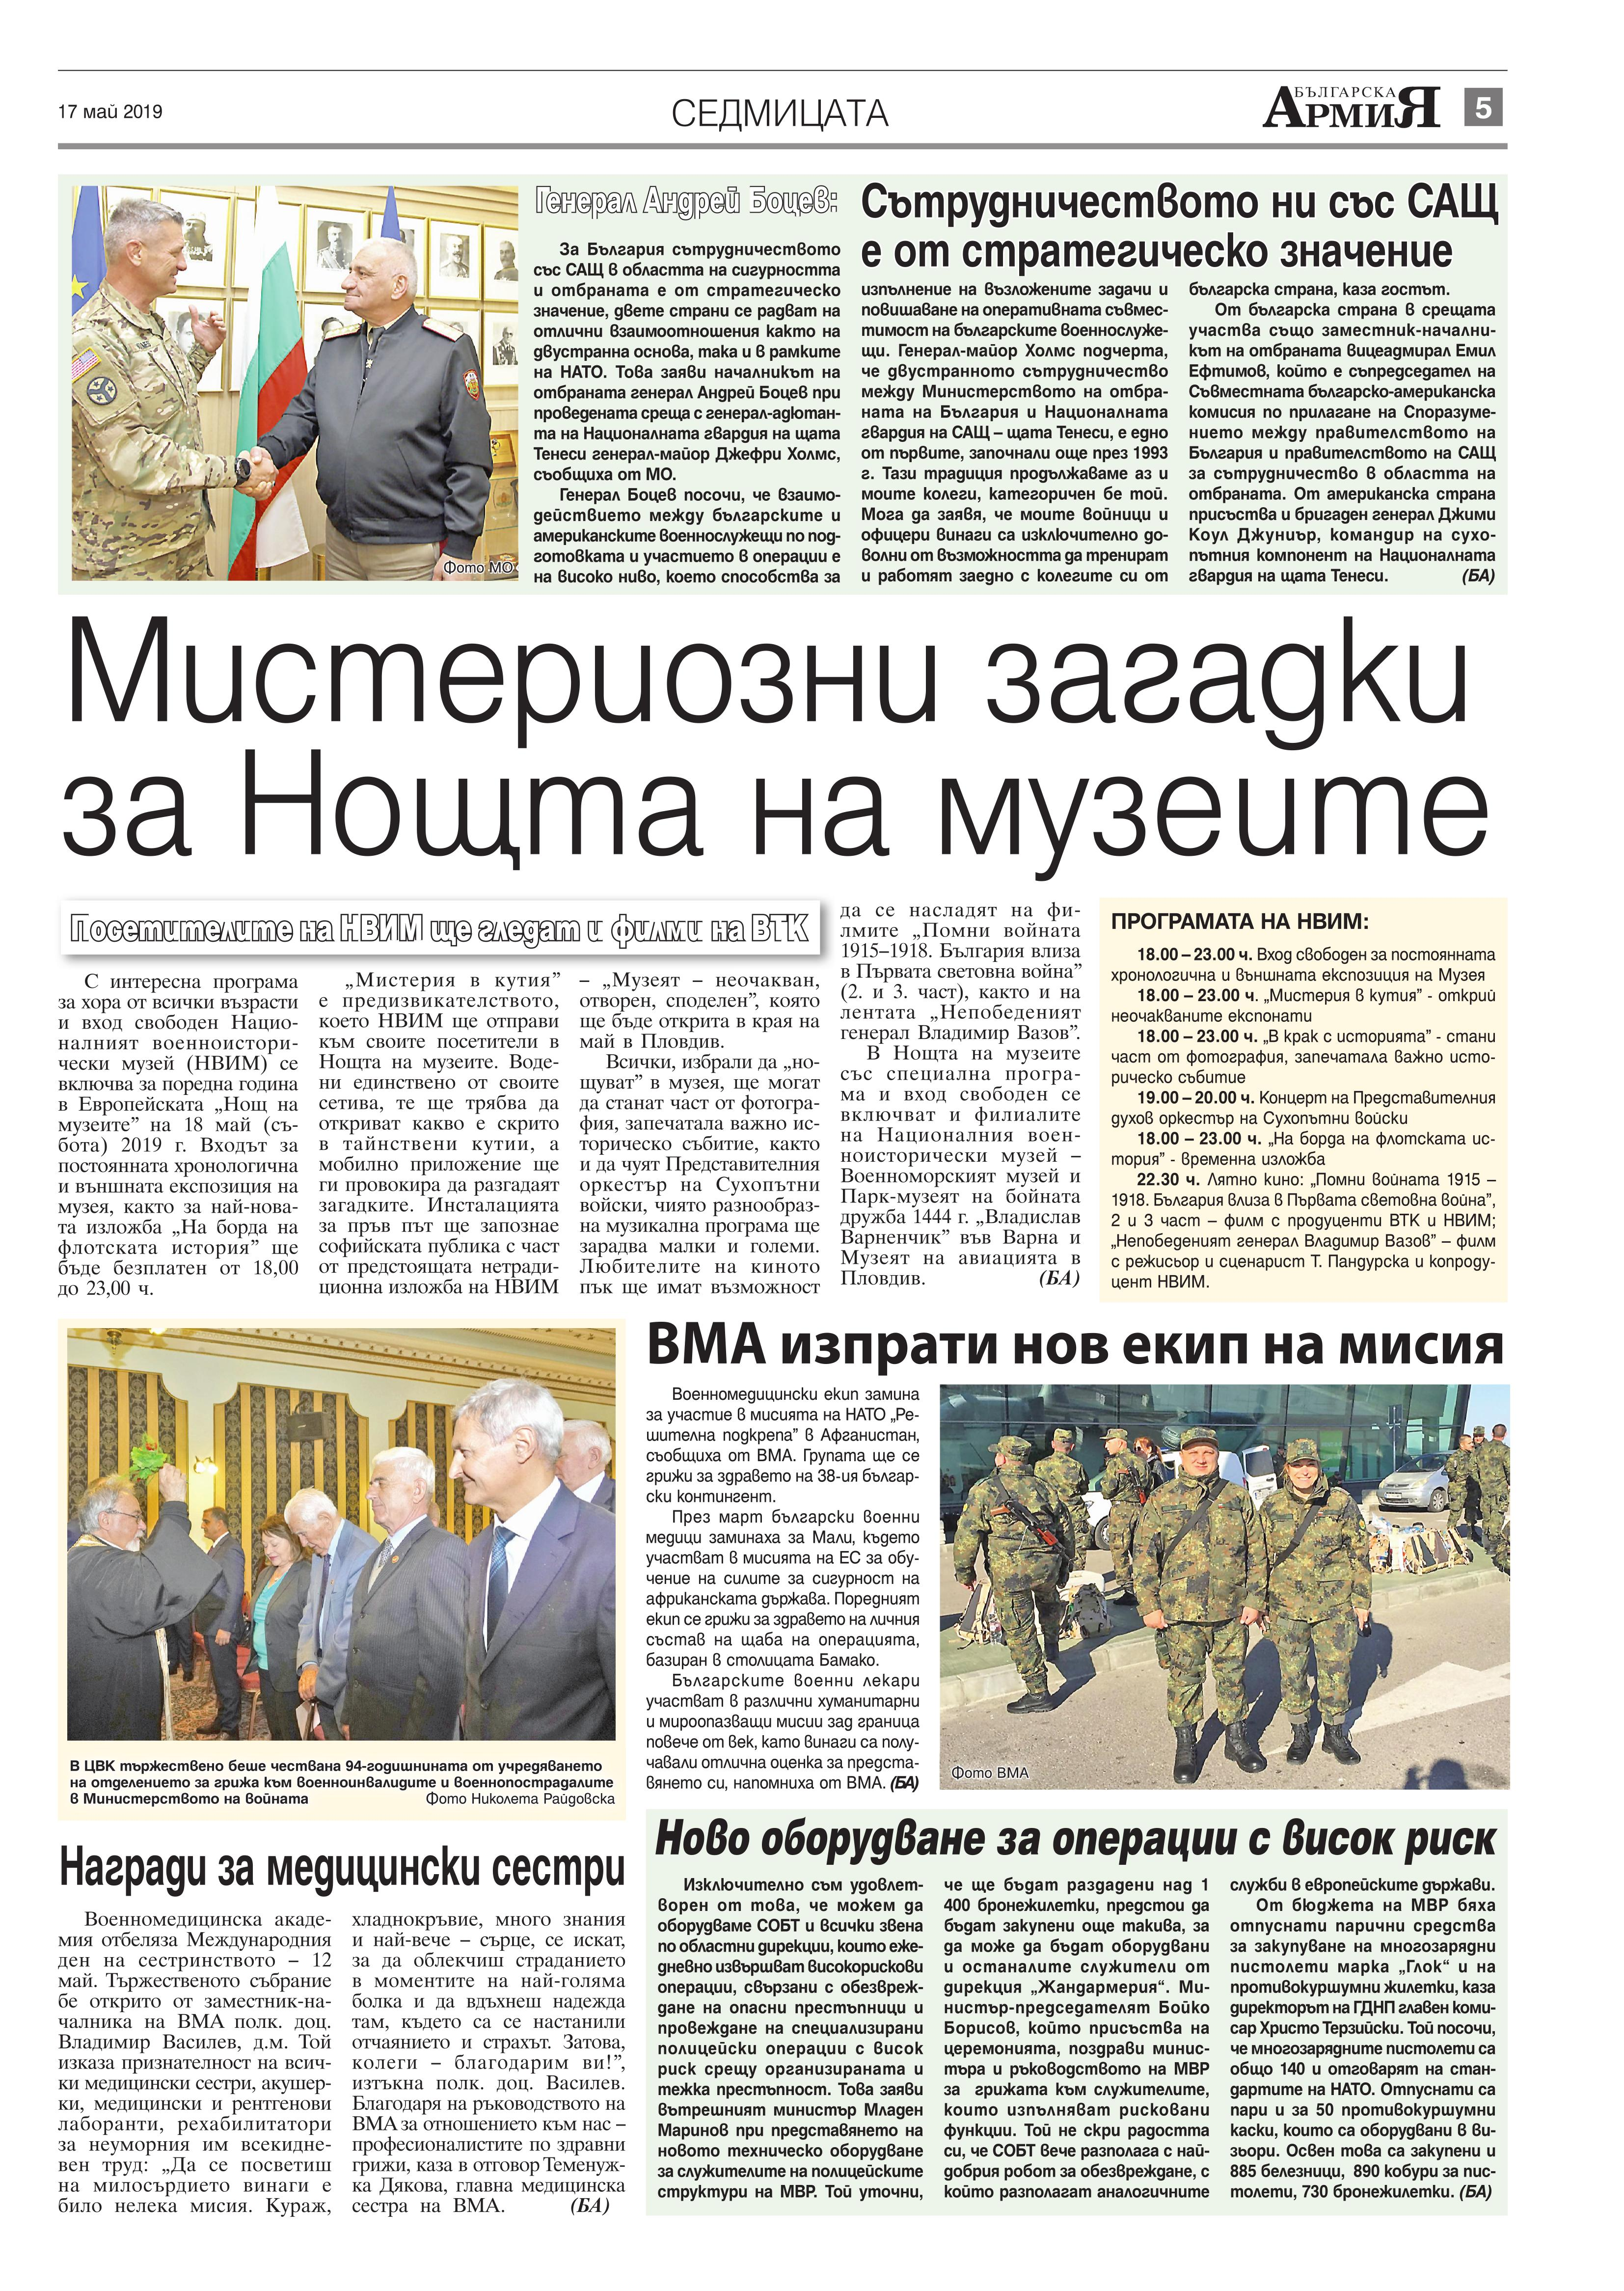 https://armymedia.bg/wp-content/uploads/2015/06/05.page1_-91.jpg